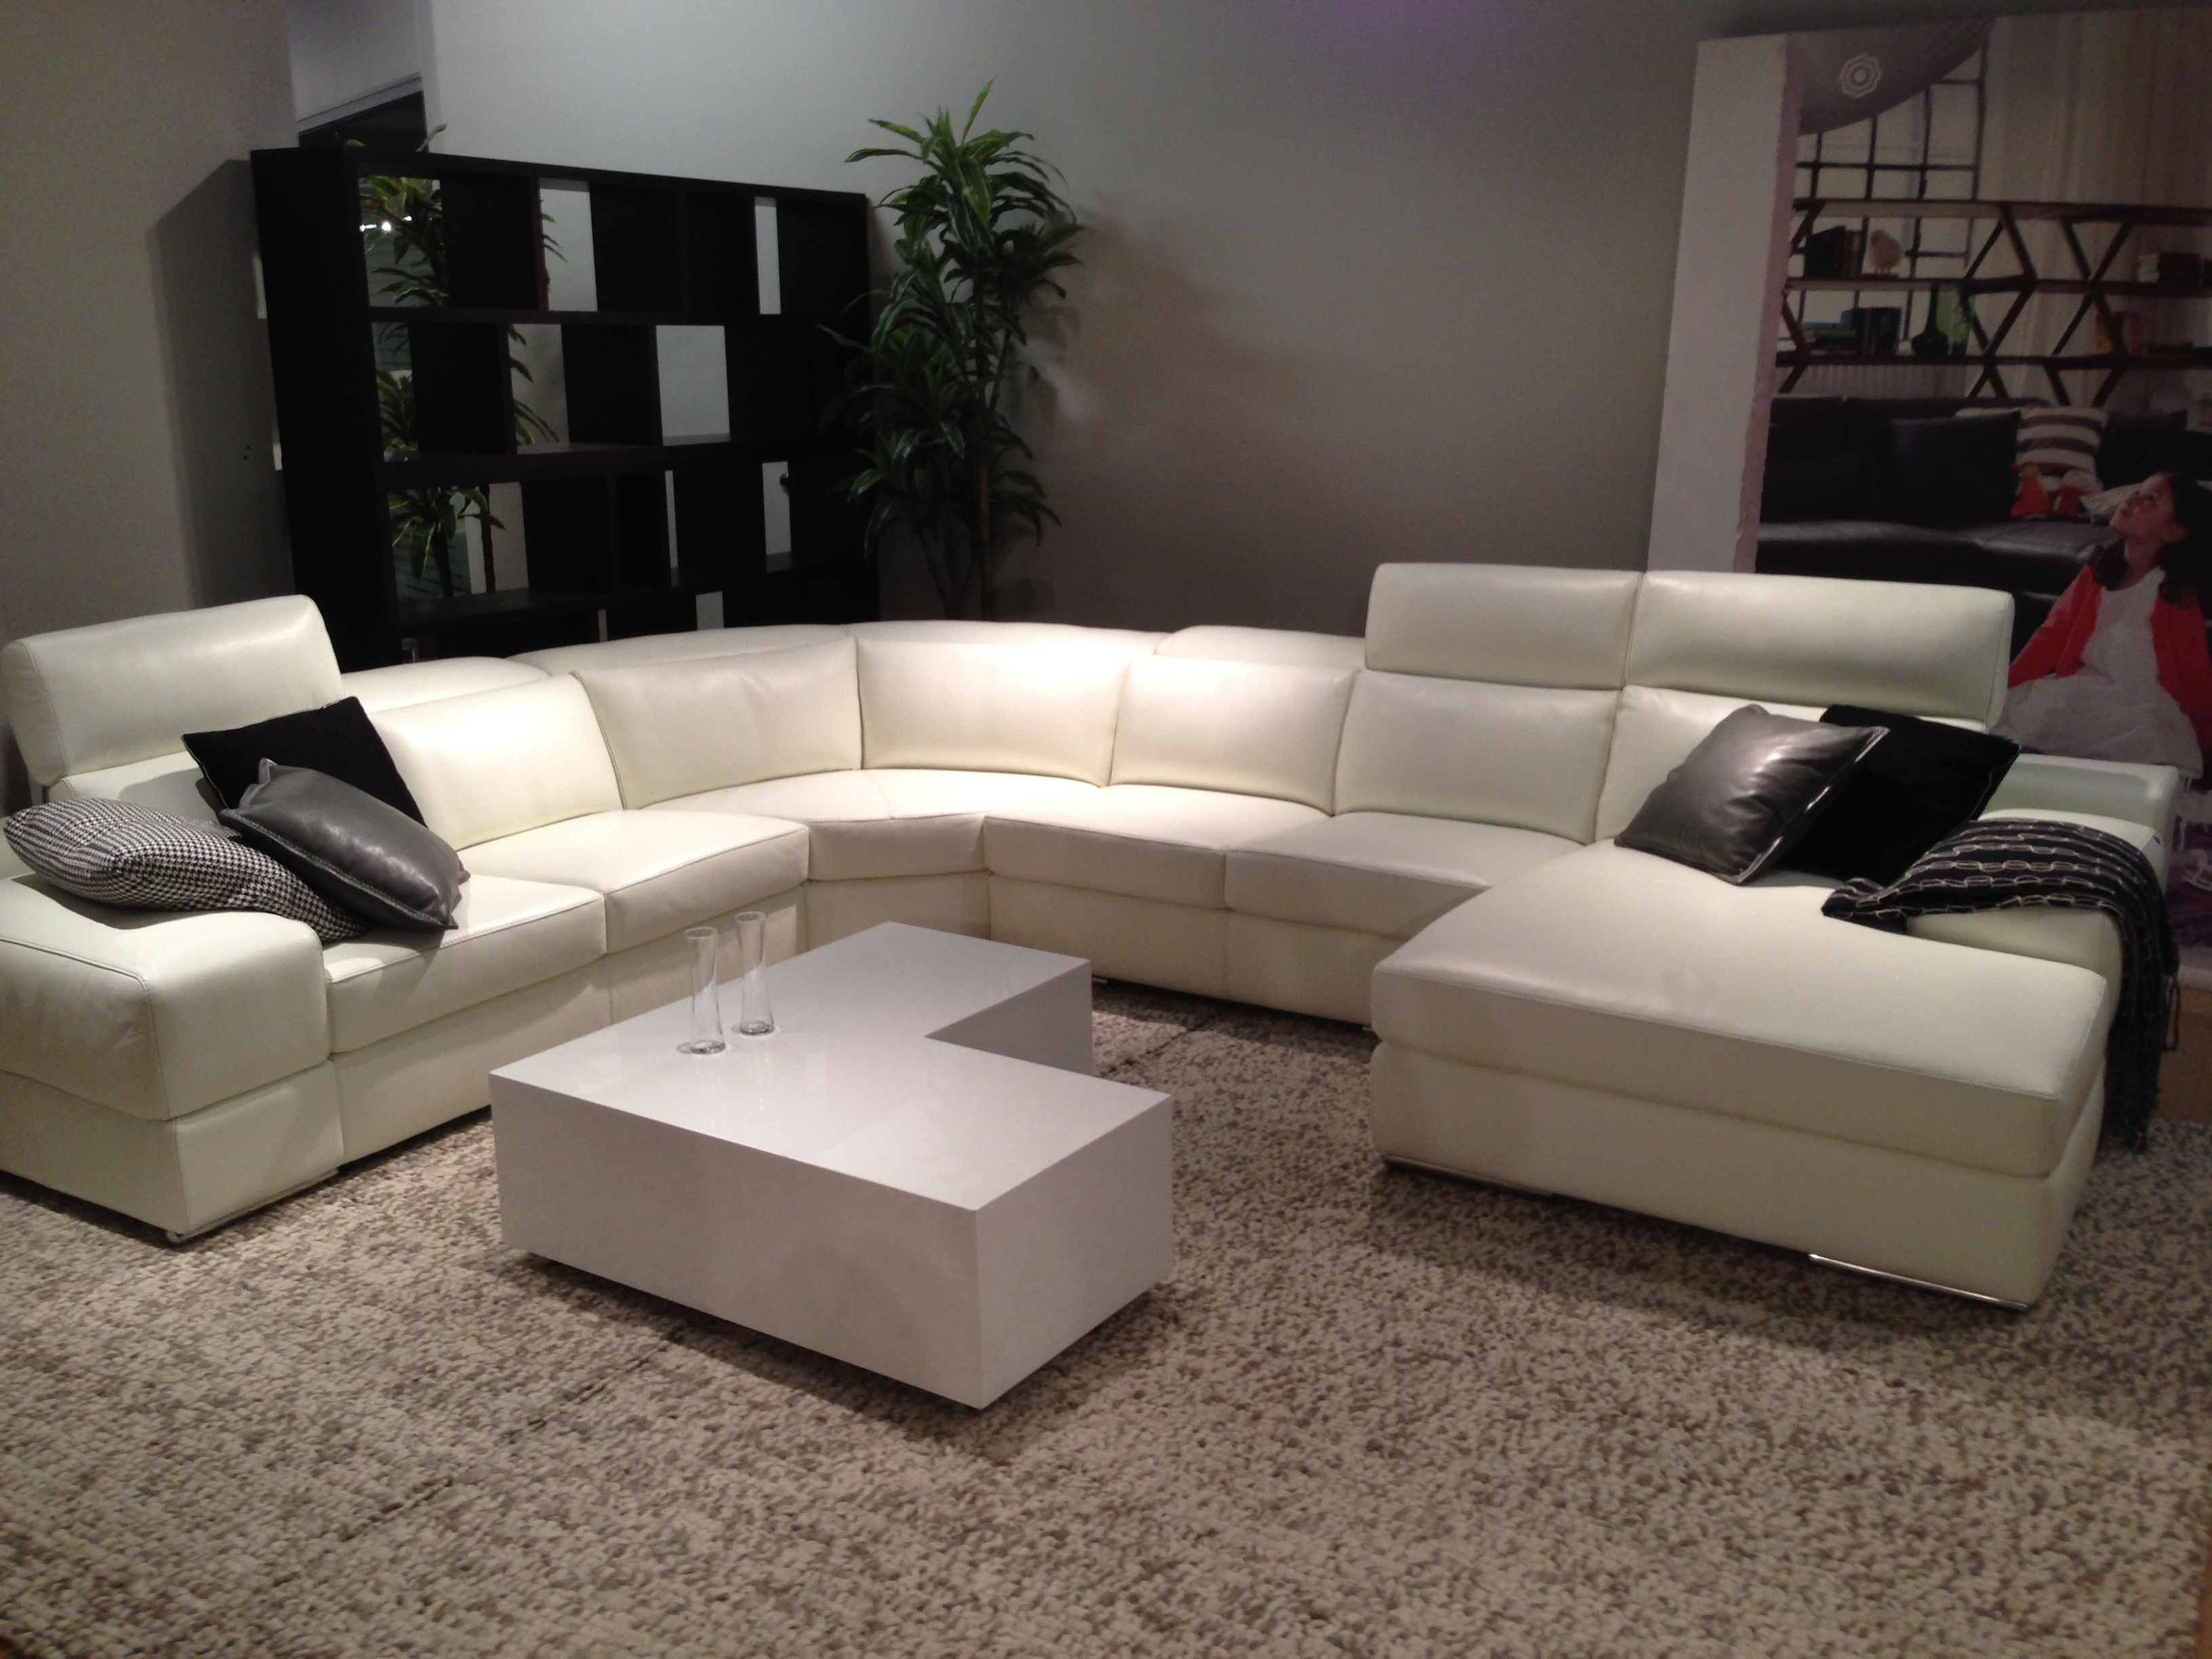 Modern White Leather Sectional Htl Portland Oregon 1,632×1,224 Regarding Portland Or Sectional Sofas (View 6 of 10)